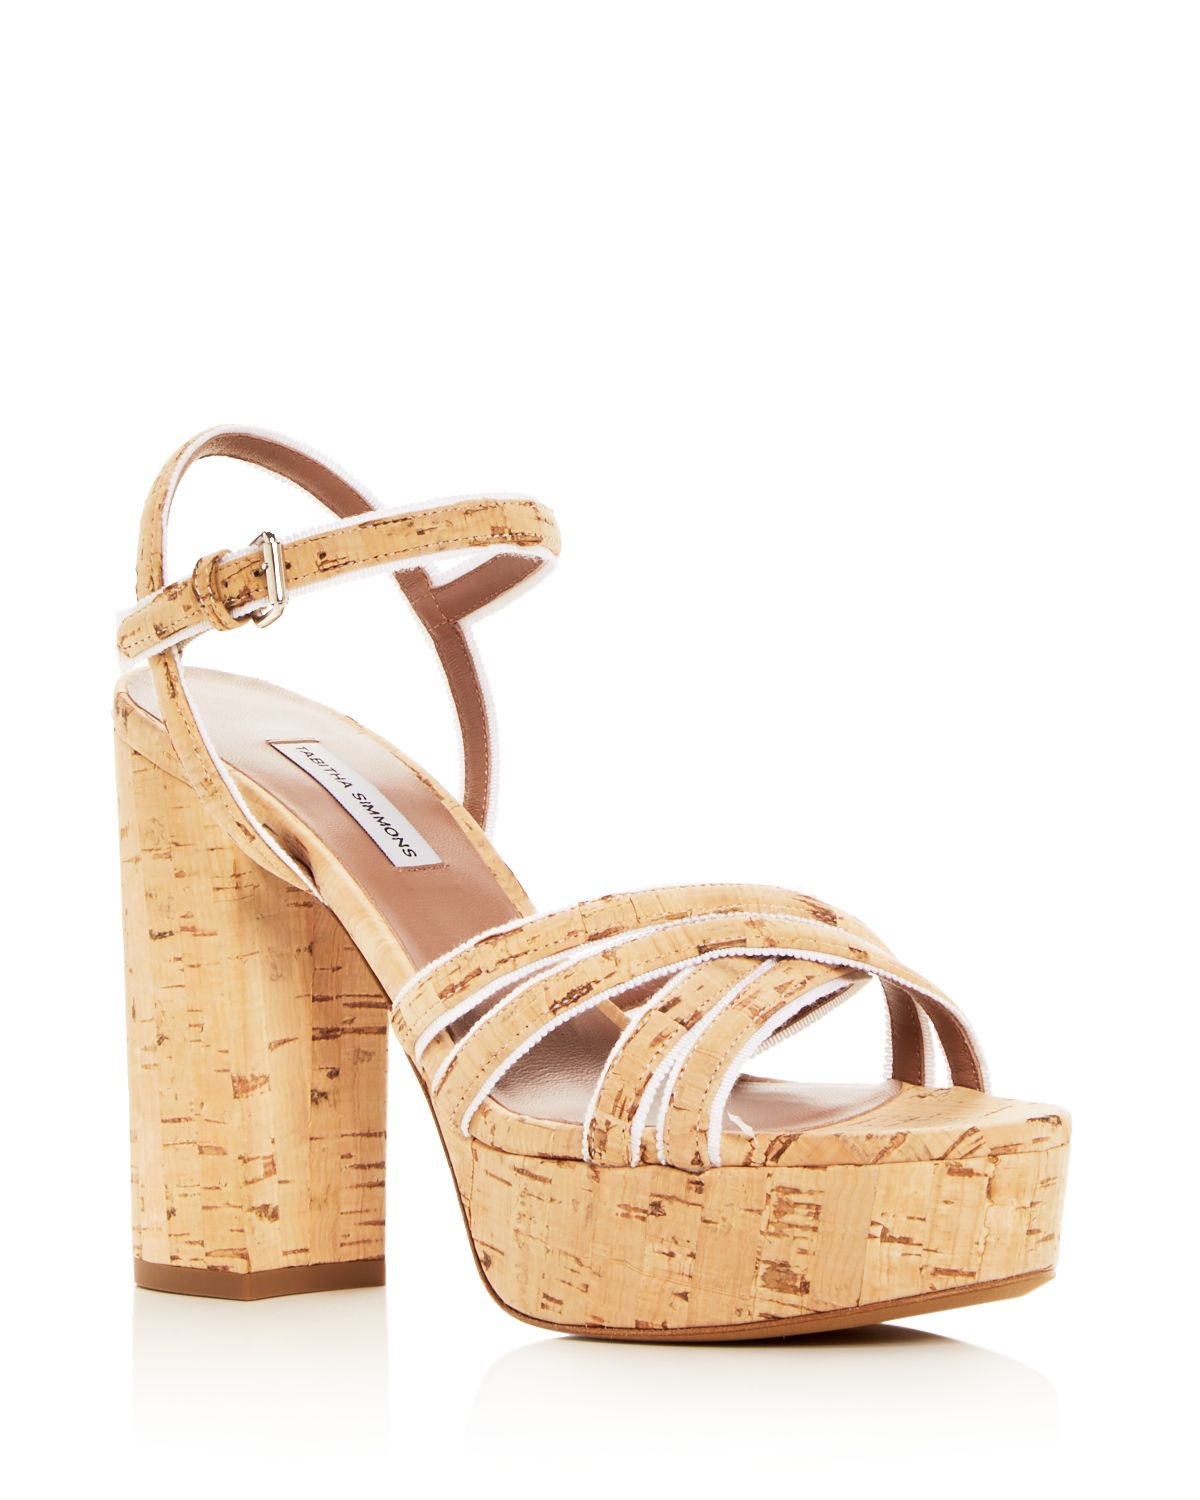 Women's Hensley Cork Platform High Heel Sandals by Tabitha Simmons